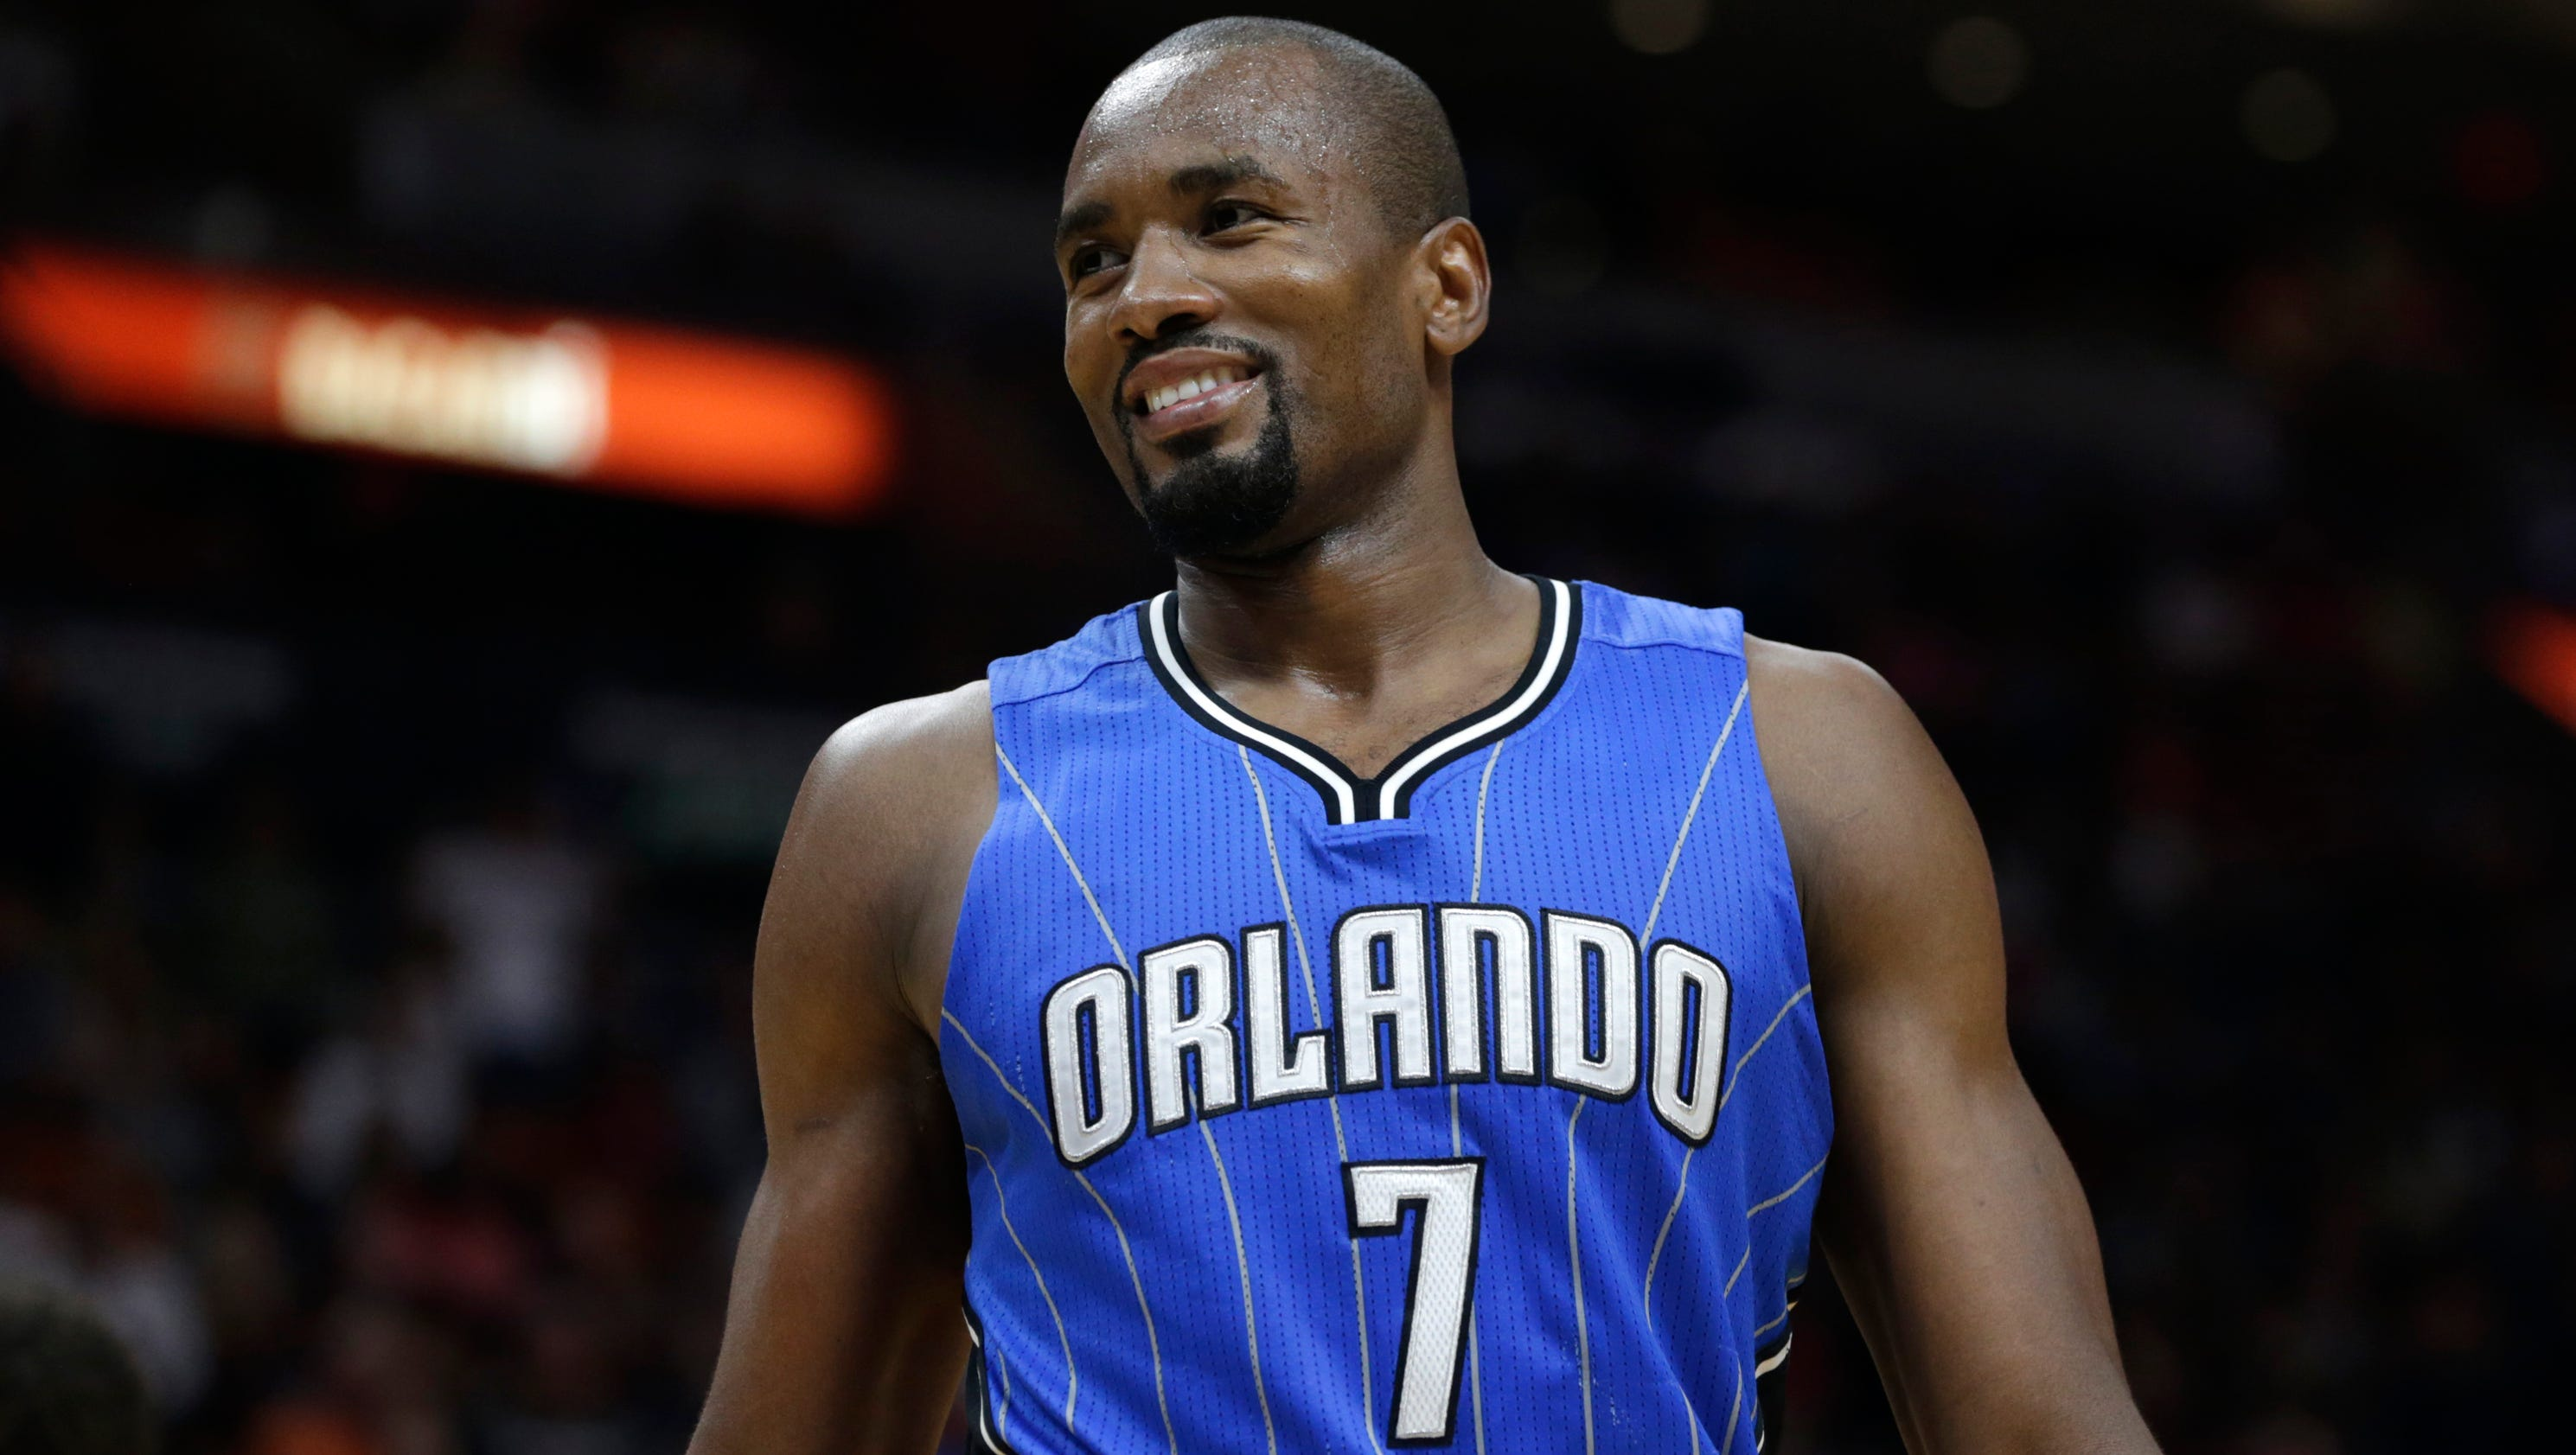 Orlando Magic trade Serge Ibaka to Toronto Raptors